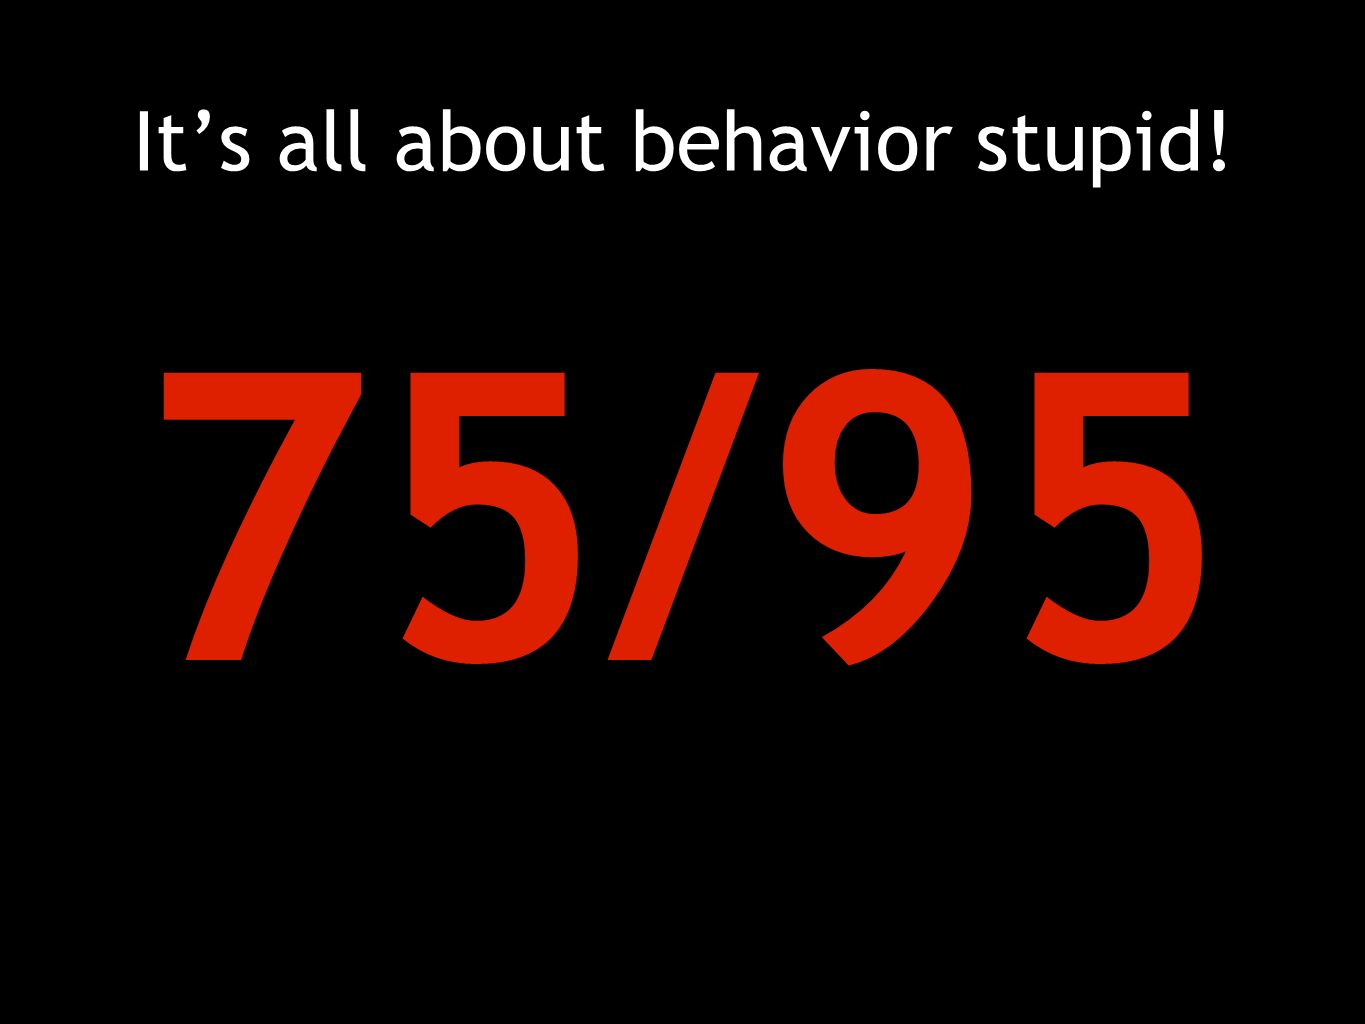 It's all about behavior stupid! 75/95